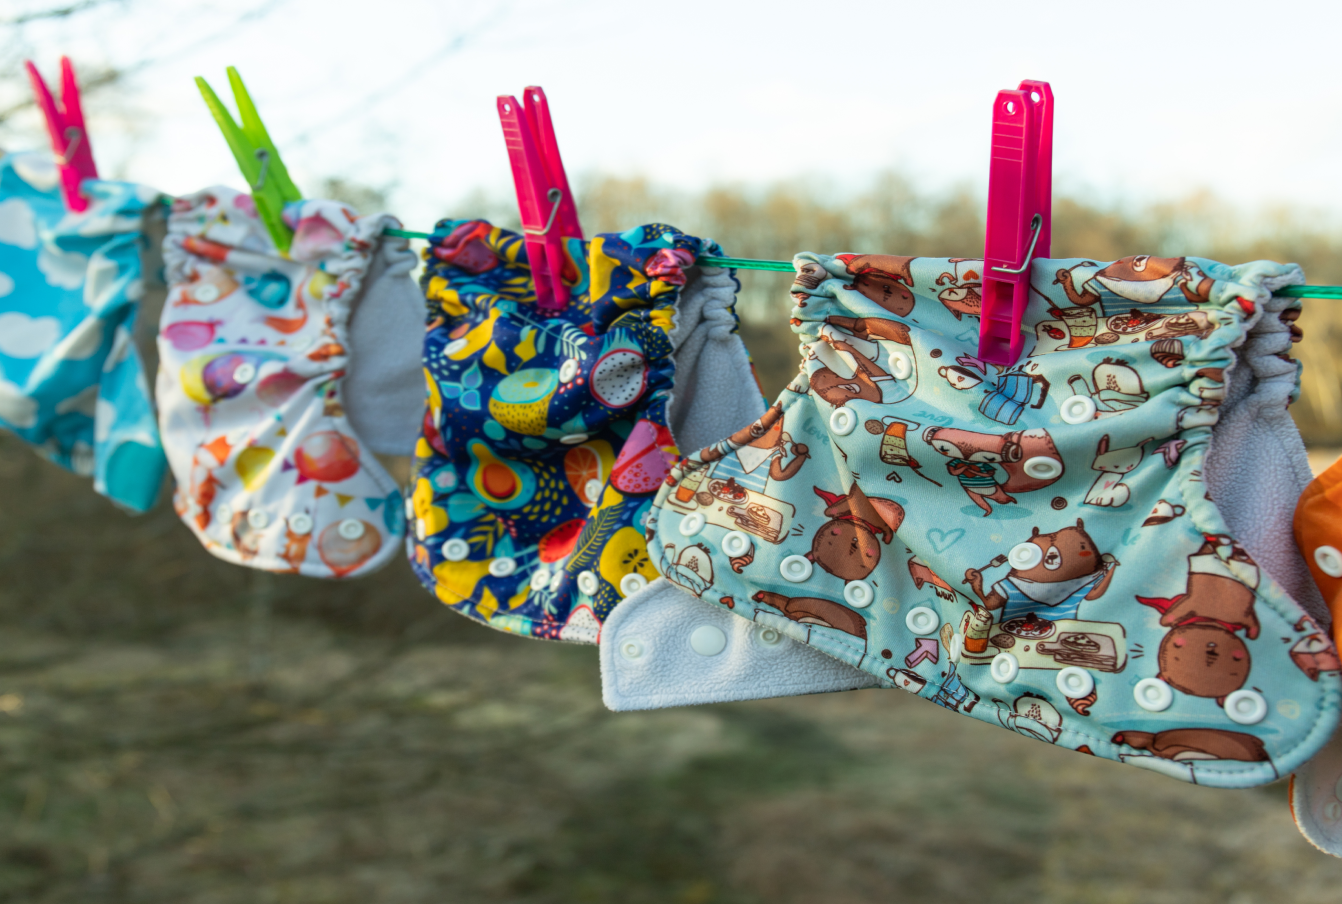 Cloth diapers on laundry line